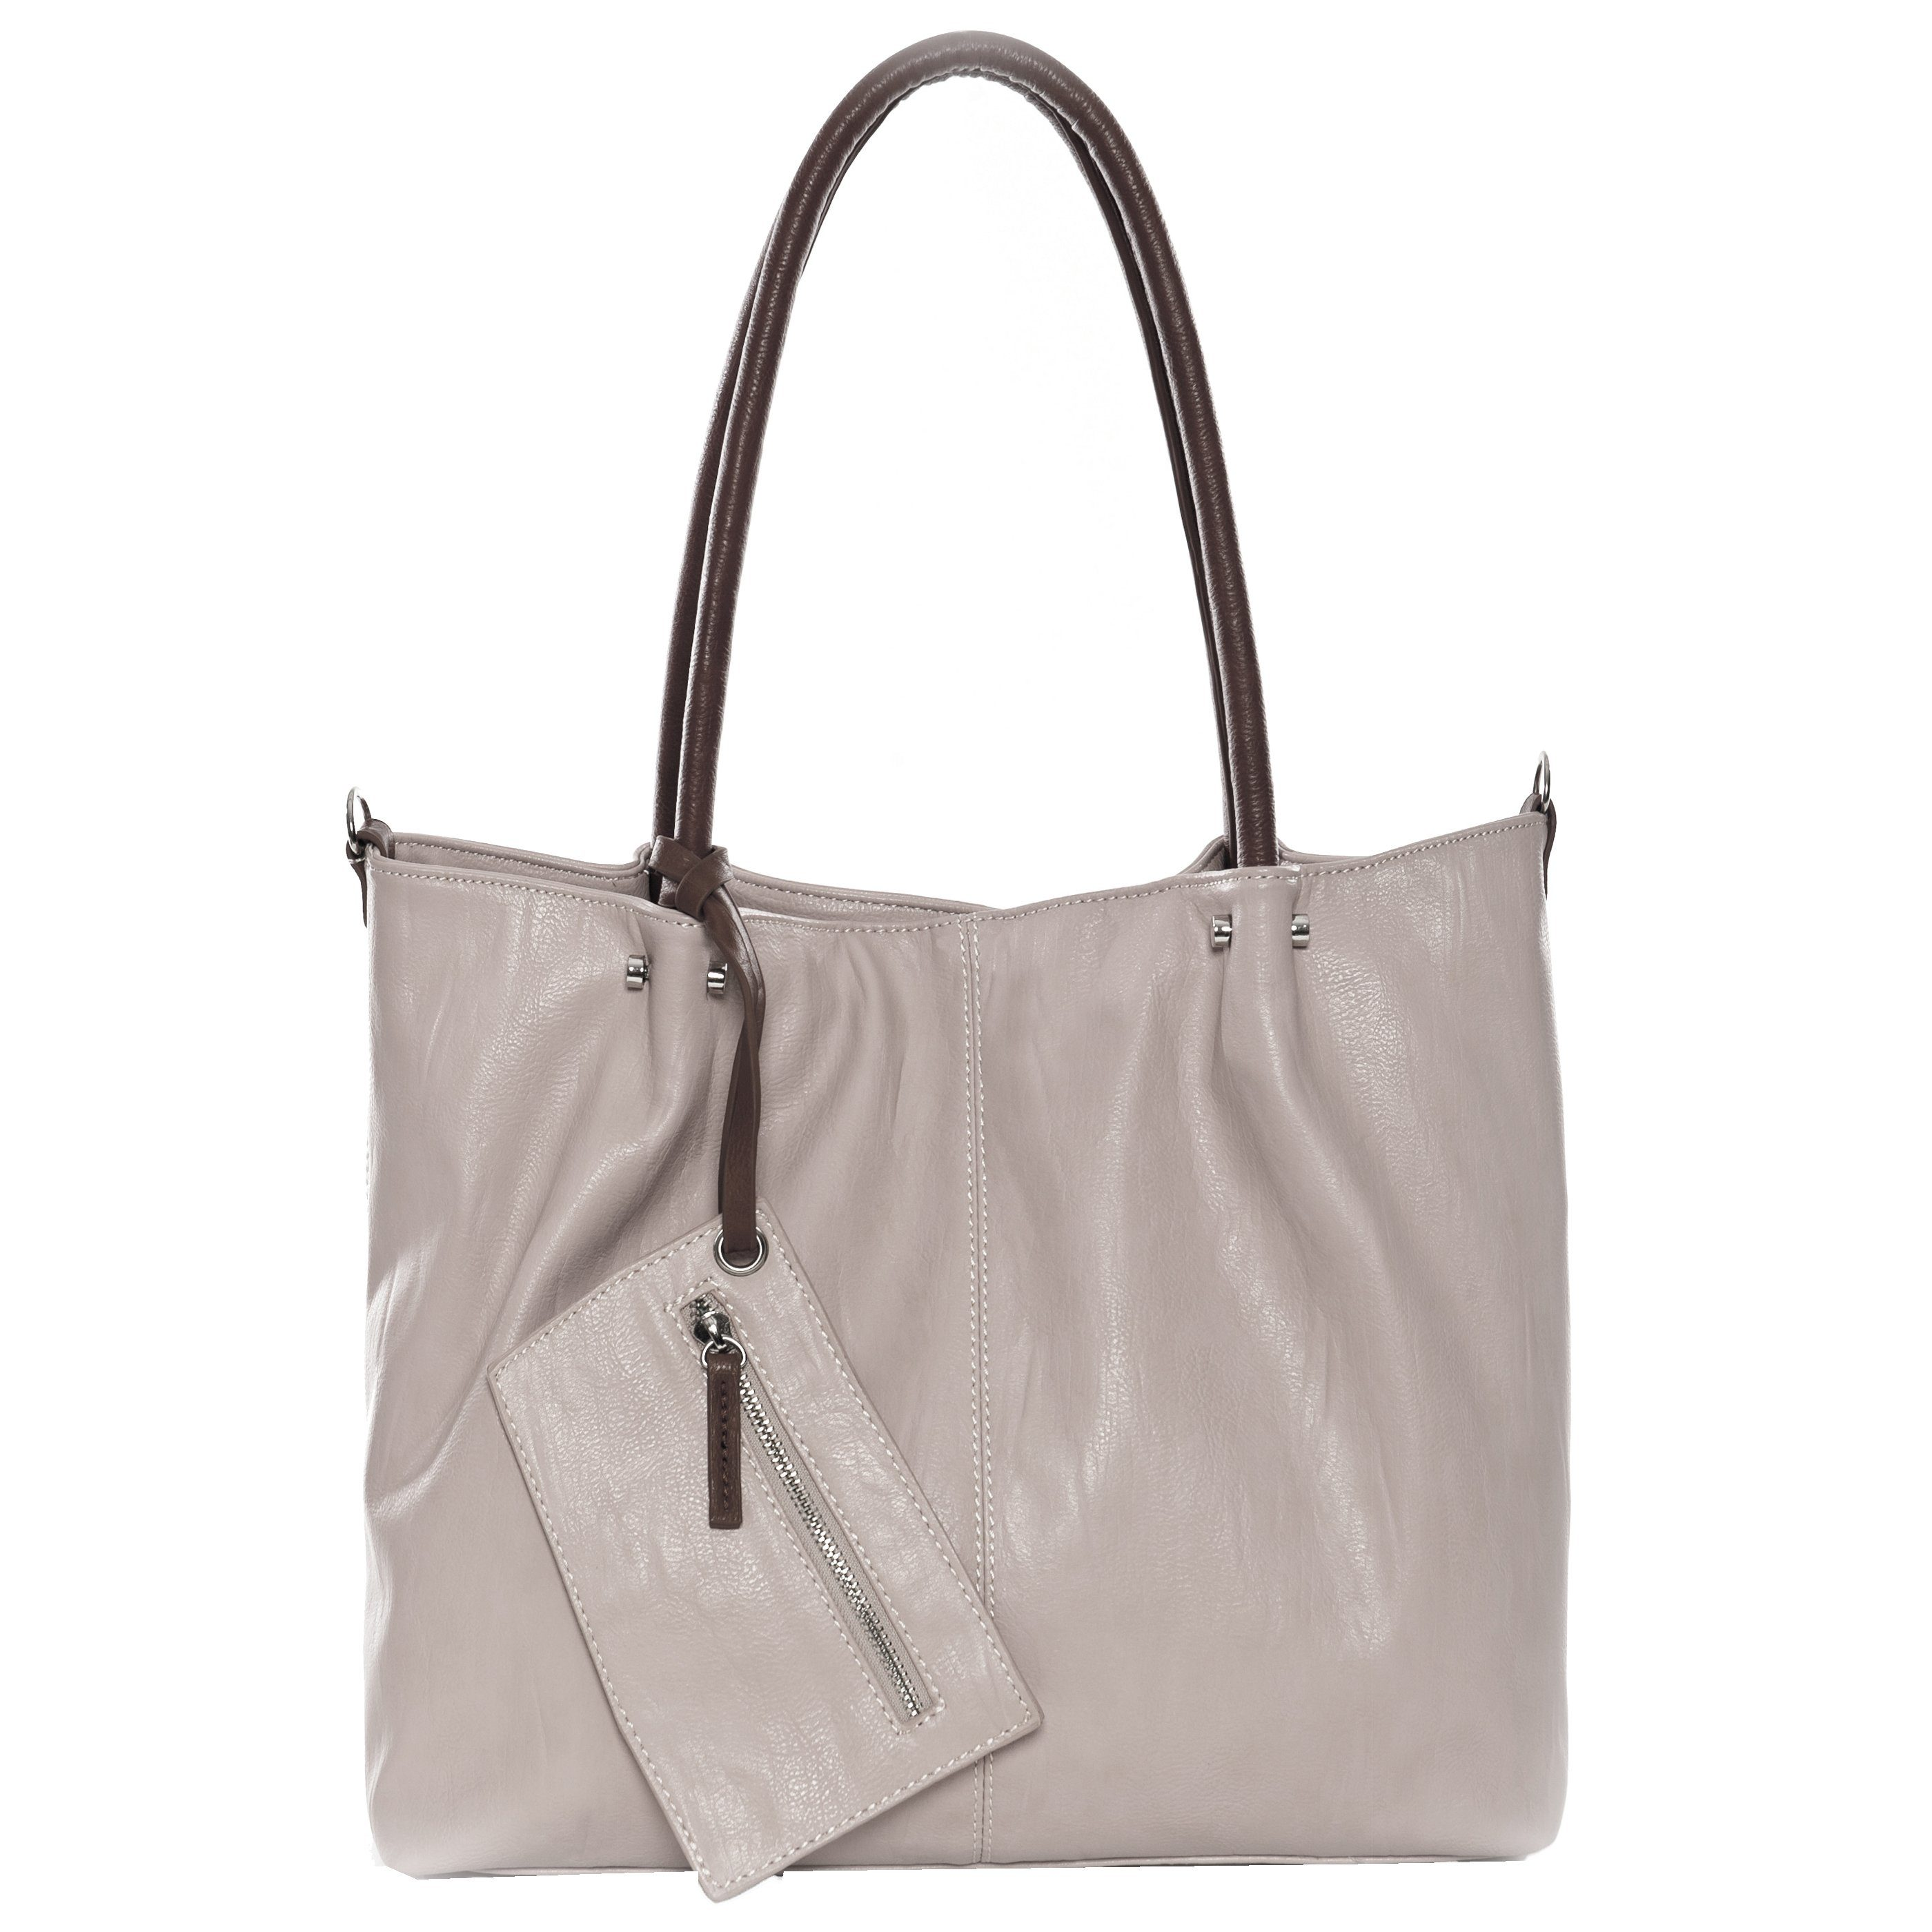 Surprise Bag in Bag Shopper Tasche II 41 cm Maestro ULzodHTTL